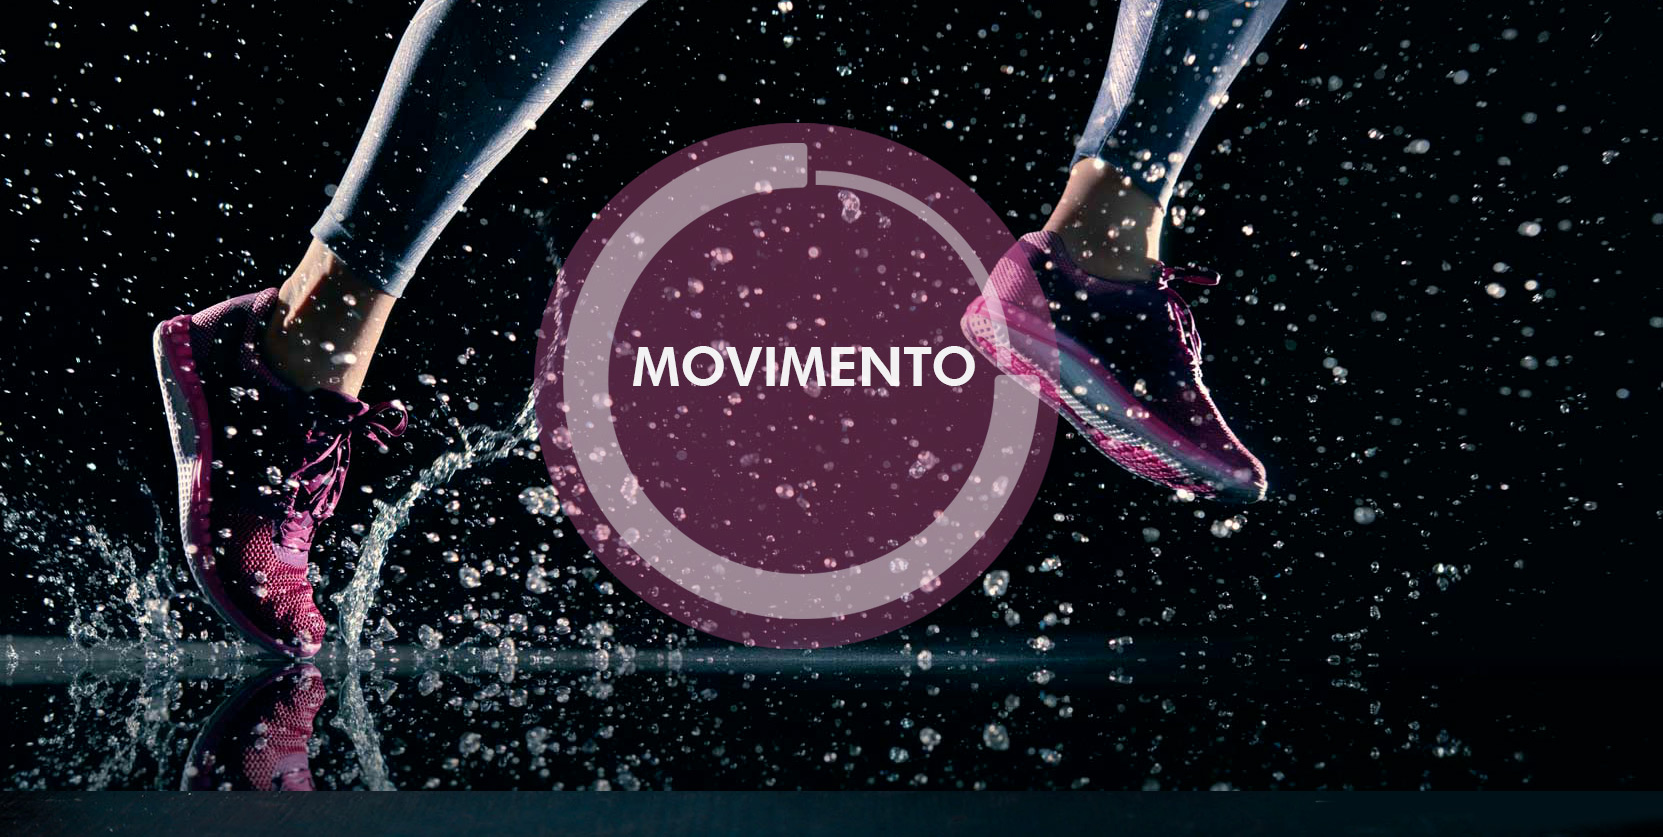 50 ANNI IN MOVIMENTO